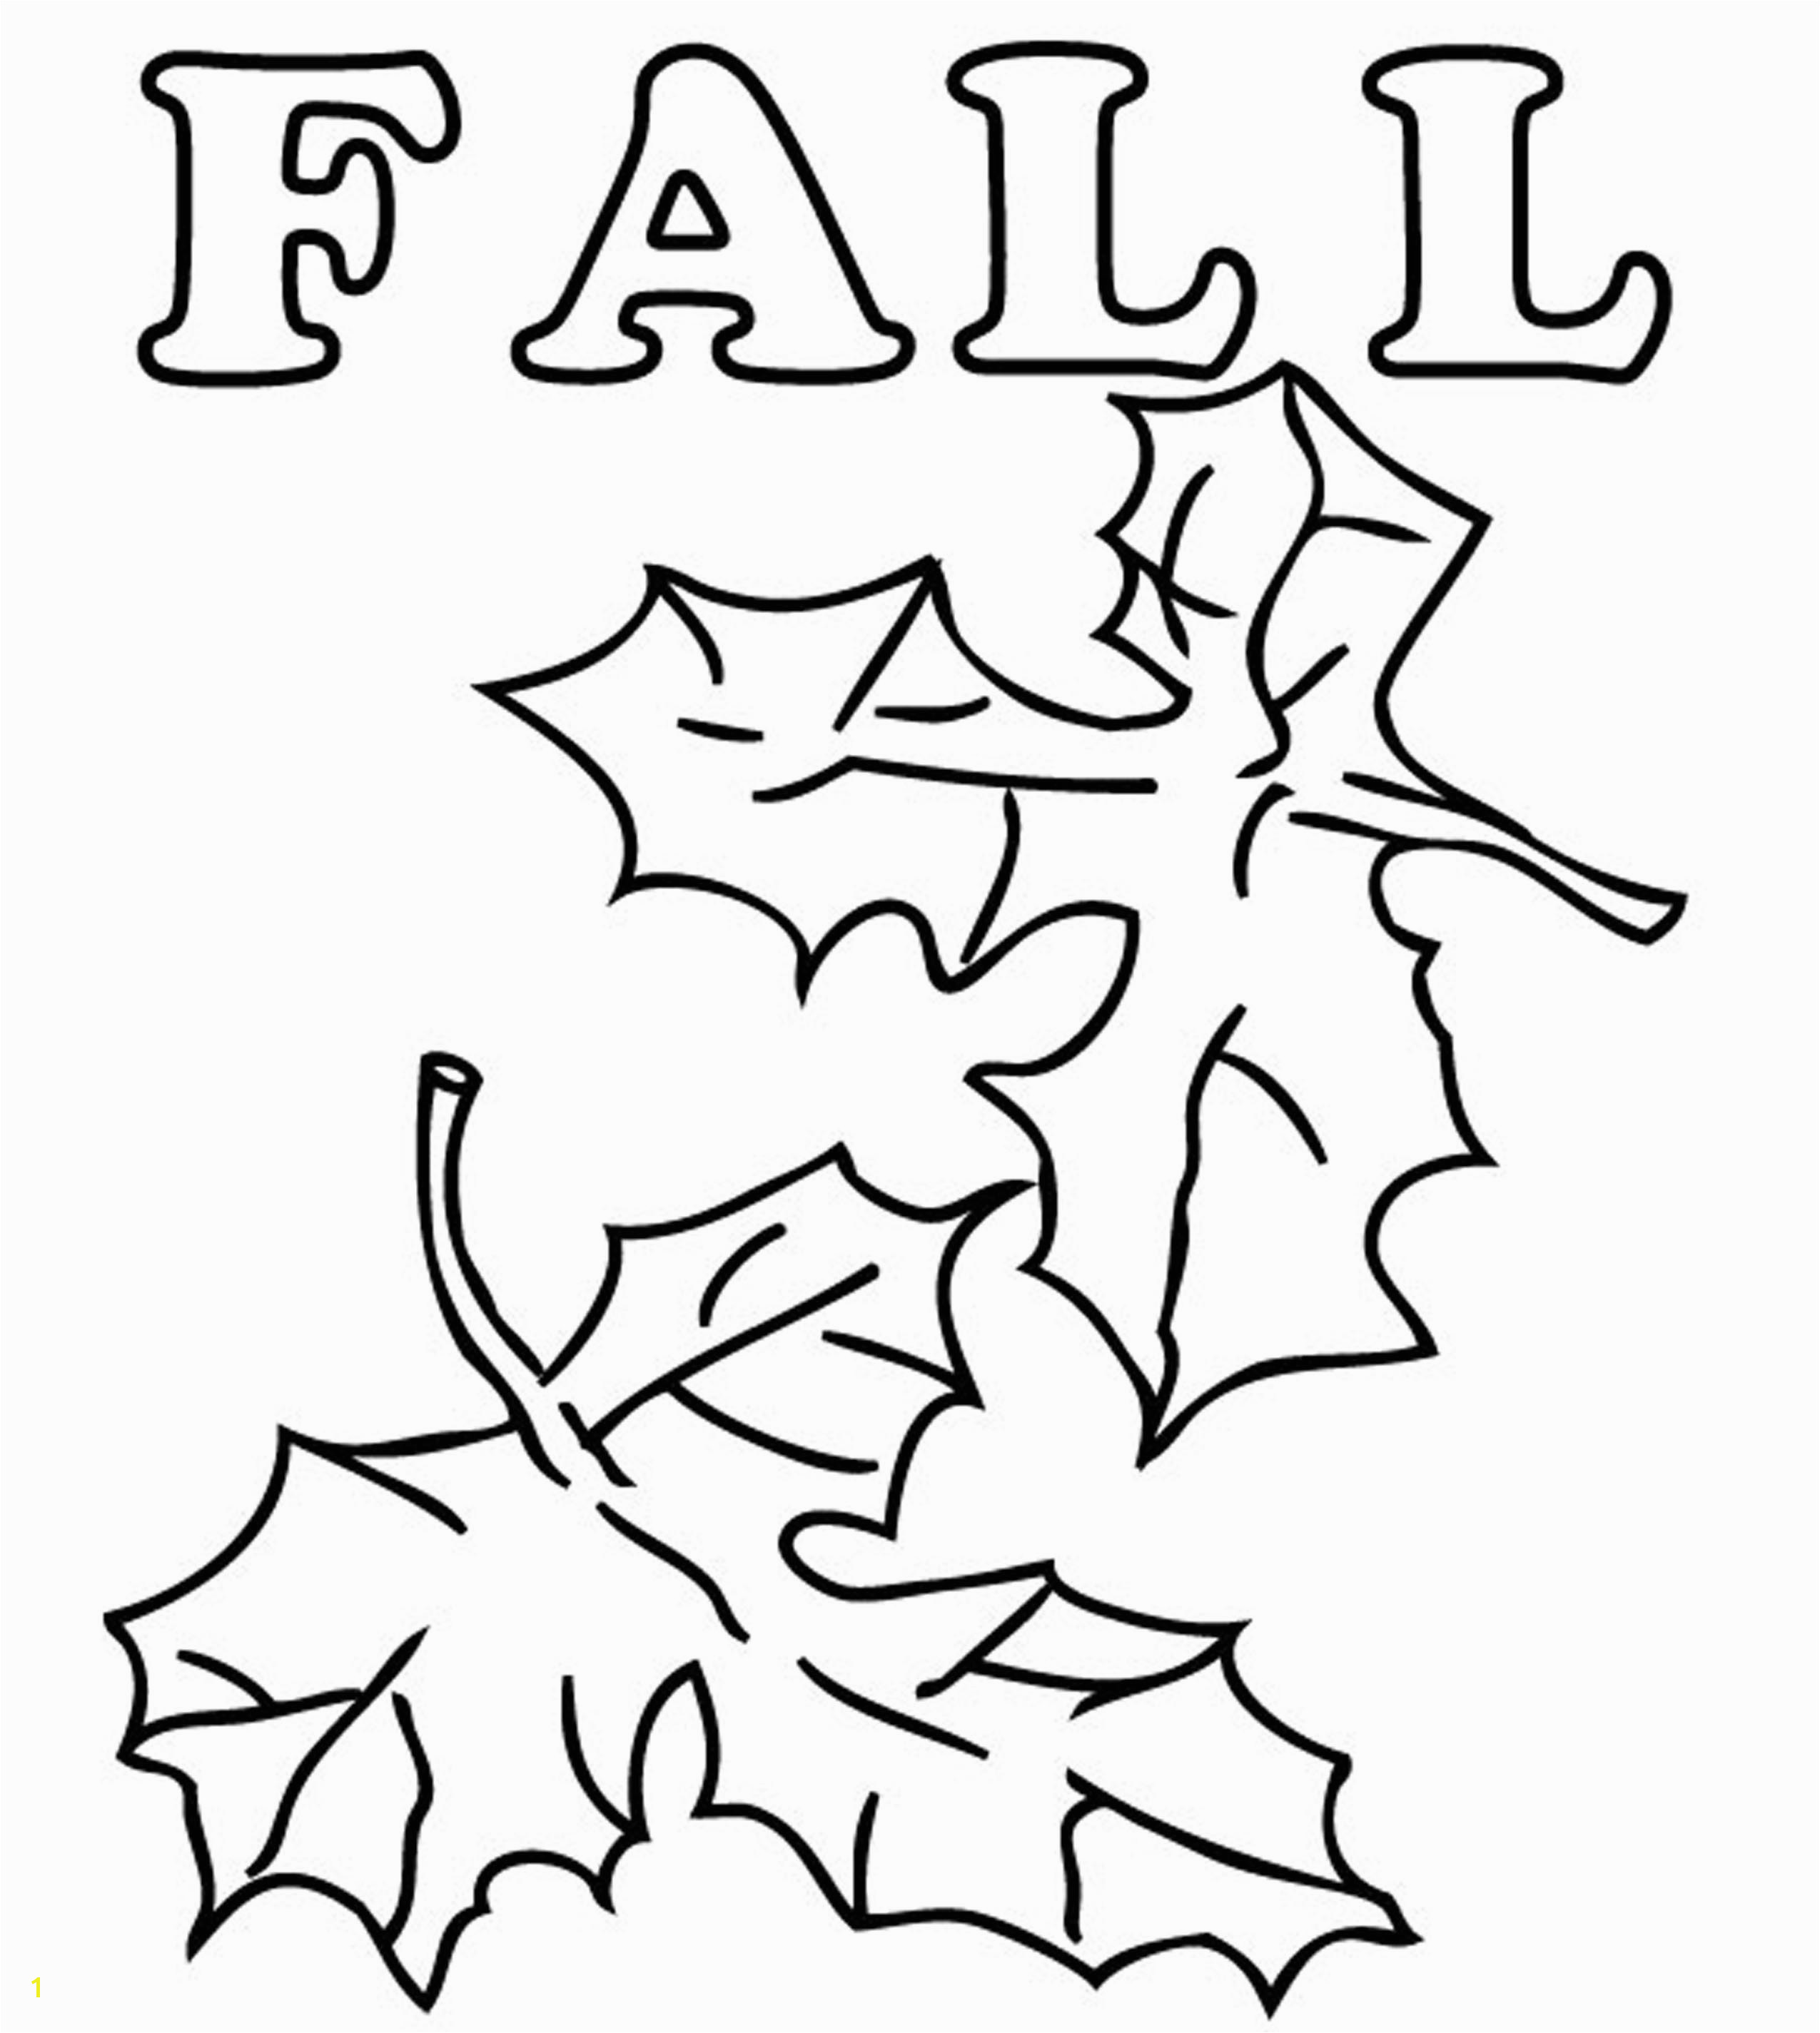 Free Coloring Pages Autumn Leaves Inspirational Fall Coloring Pages 0d Page for Kids Inspirational Kidsboys